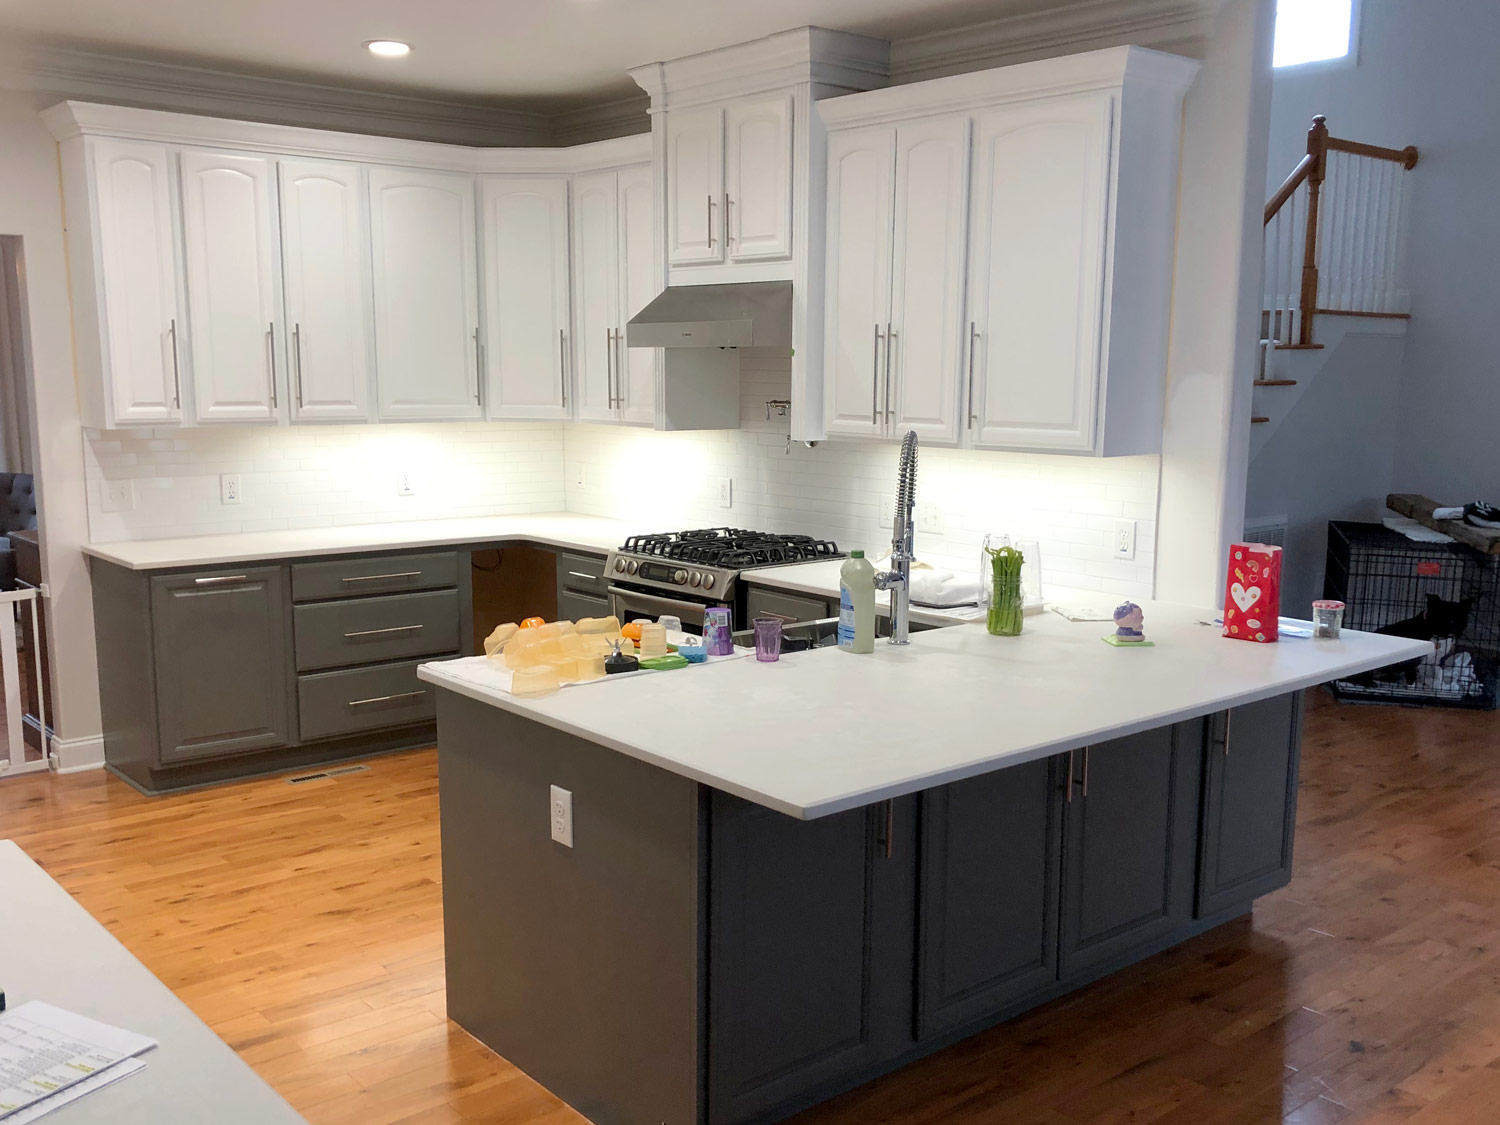 Two-tone cabinets kitchen wish list must haves of 2019